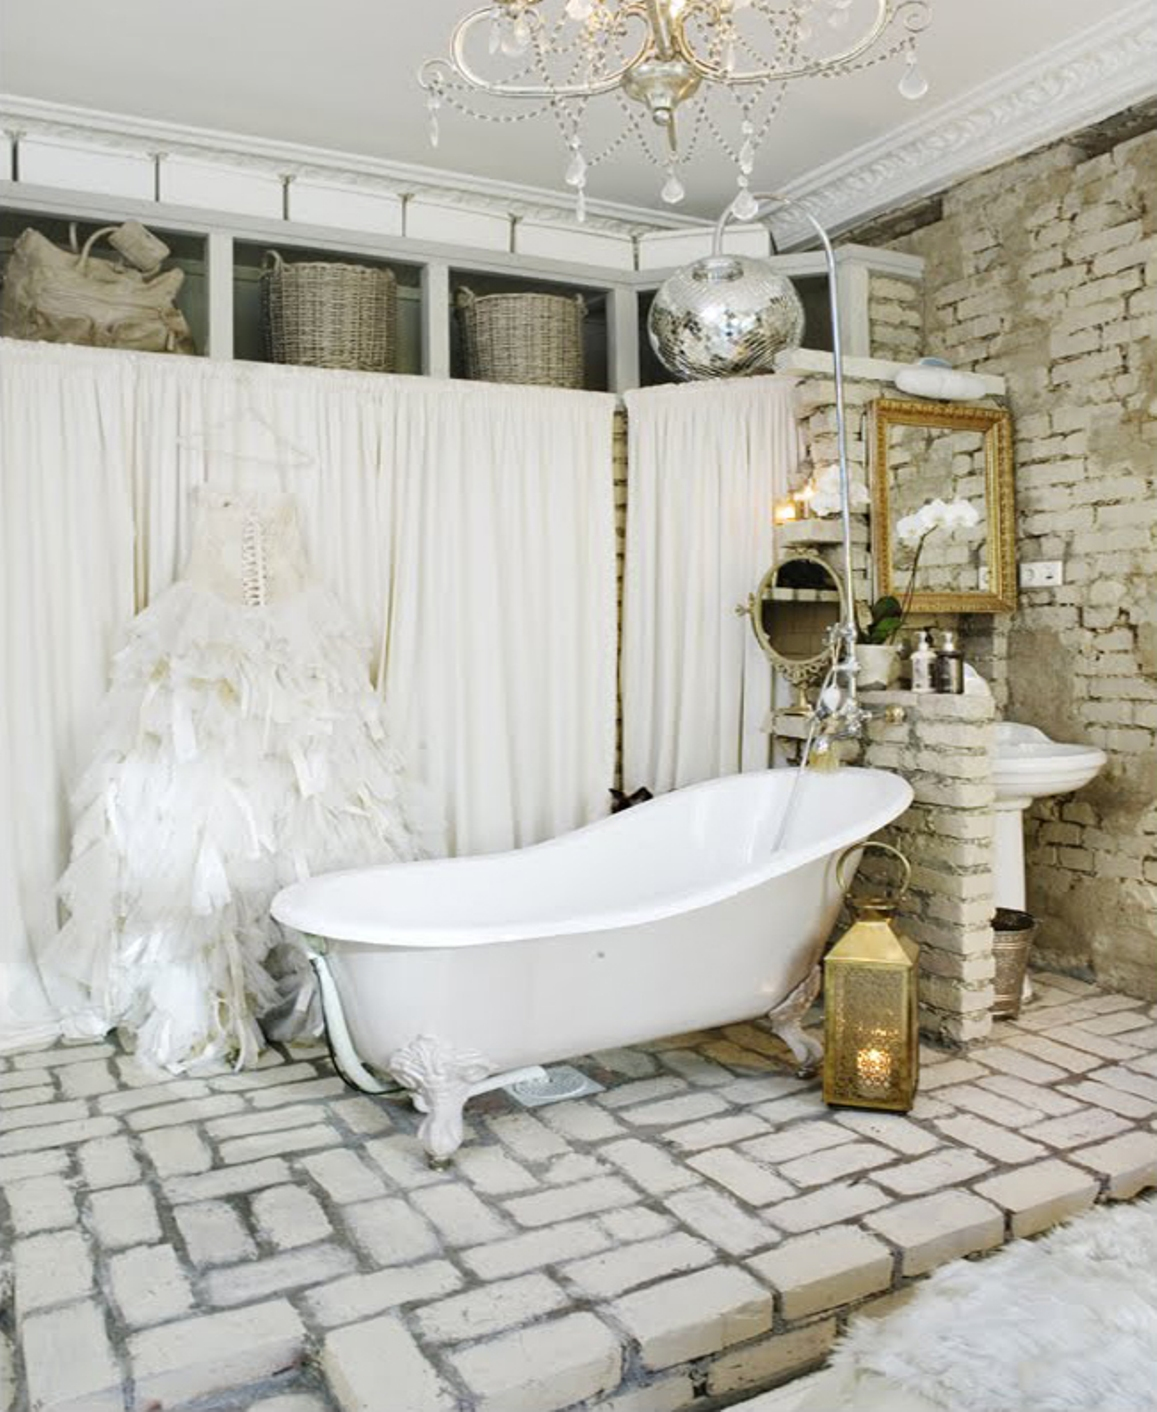 Beautiful-vintage-bathroom-design-ideas - Copy